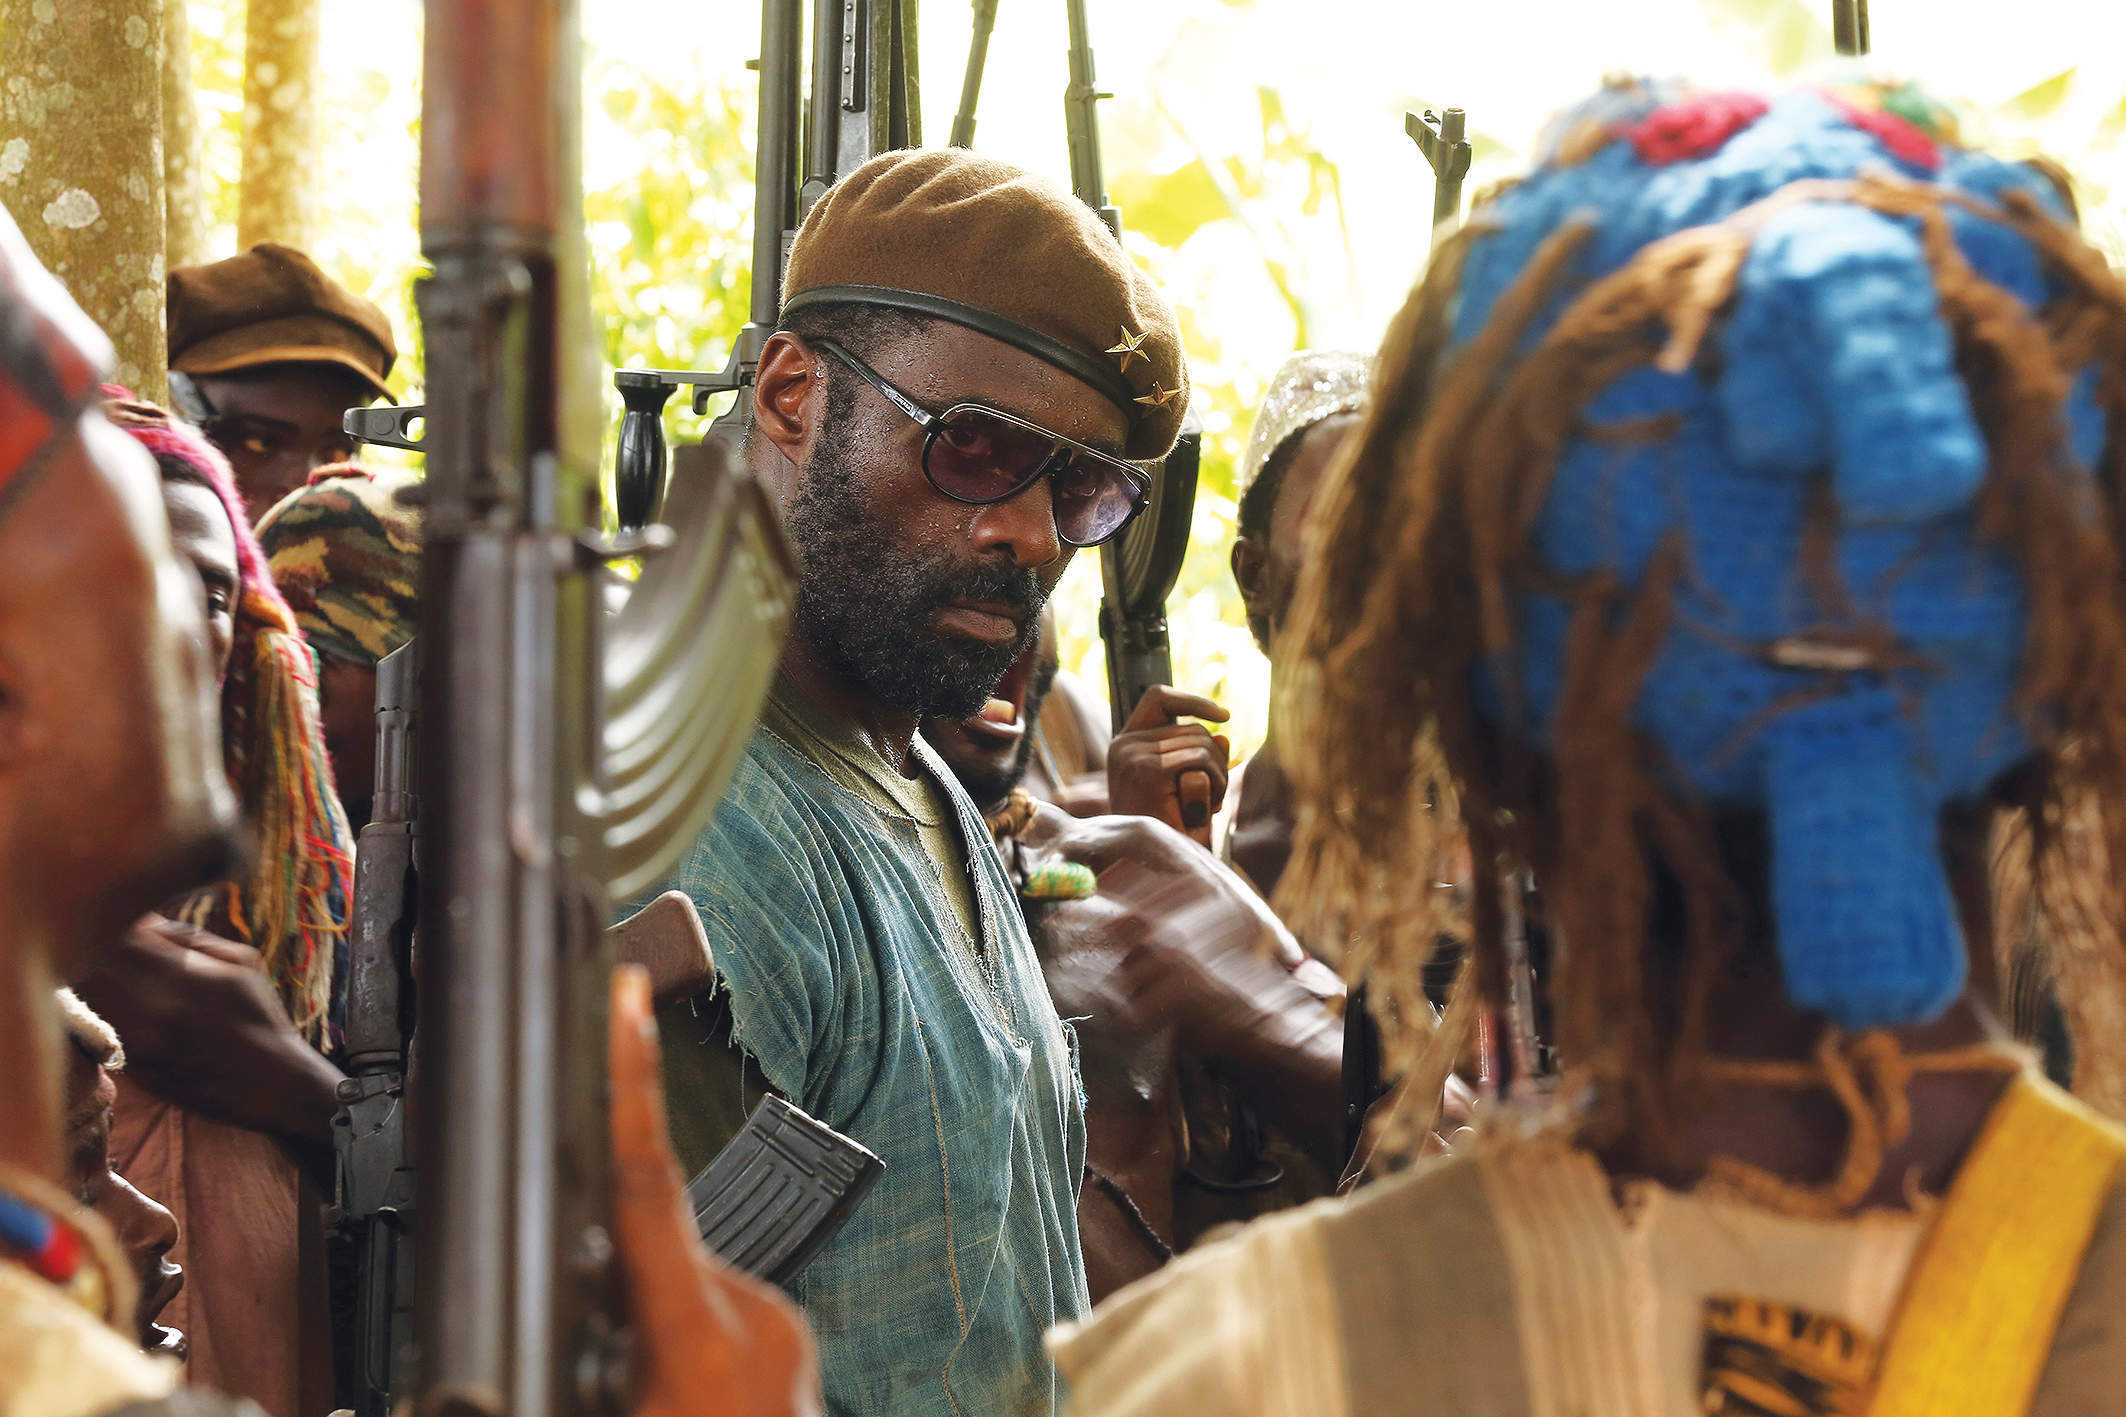 Beasts of No Nation reminds us of fates worse than death